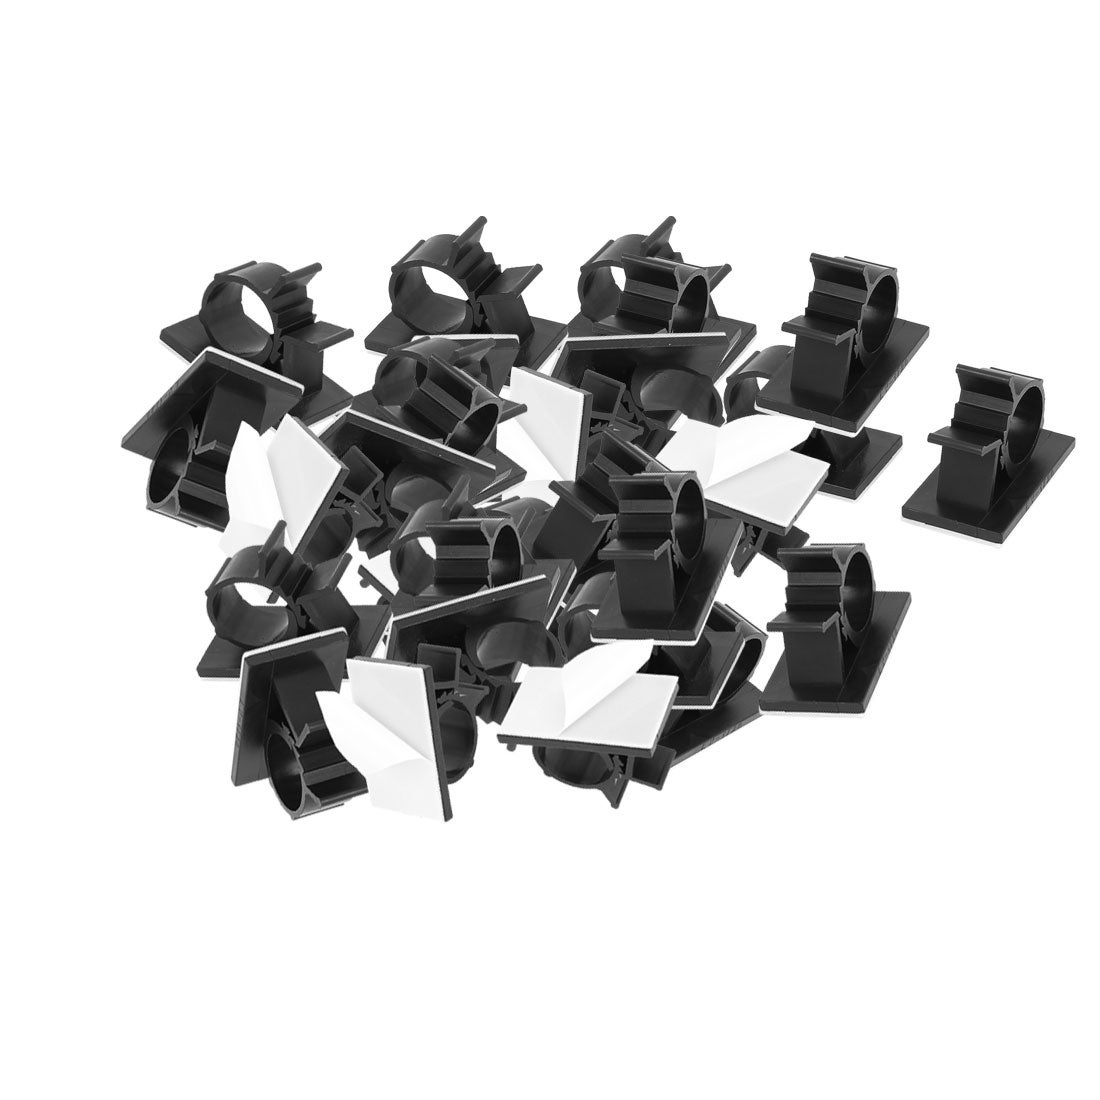 941b8dd50aa5 Shop 30 Pcs 25mmx42mm White Adhesive Backed Nylon Wire Adjustable Cable  Clips Clamps - Free Shipping On Orders Over $45 - Overstock - 18400847